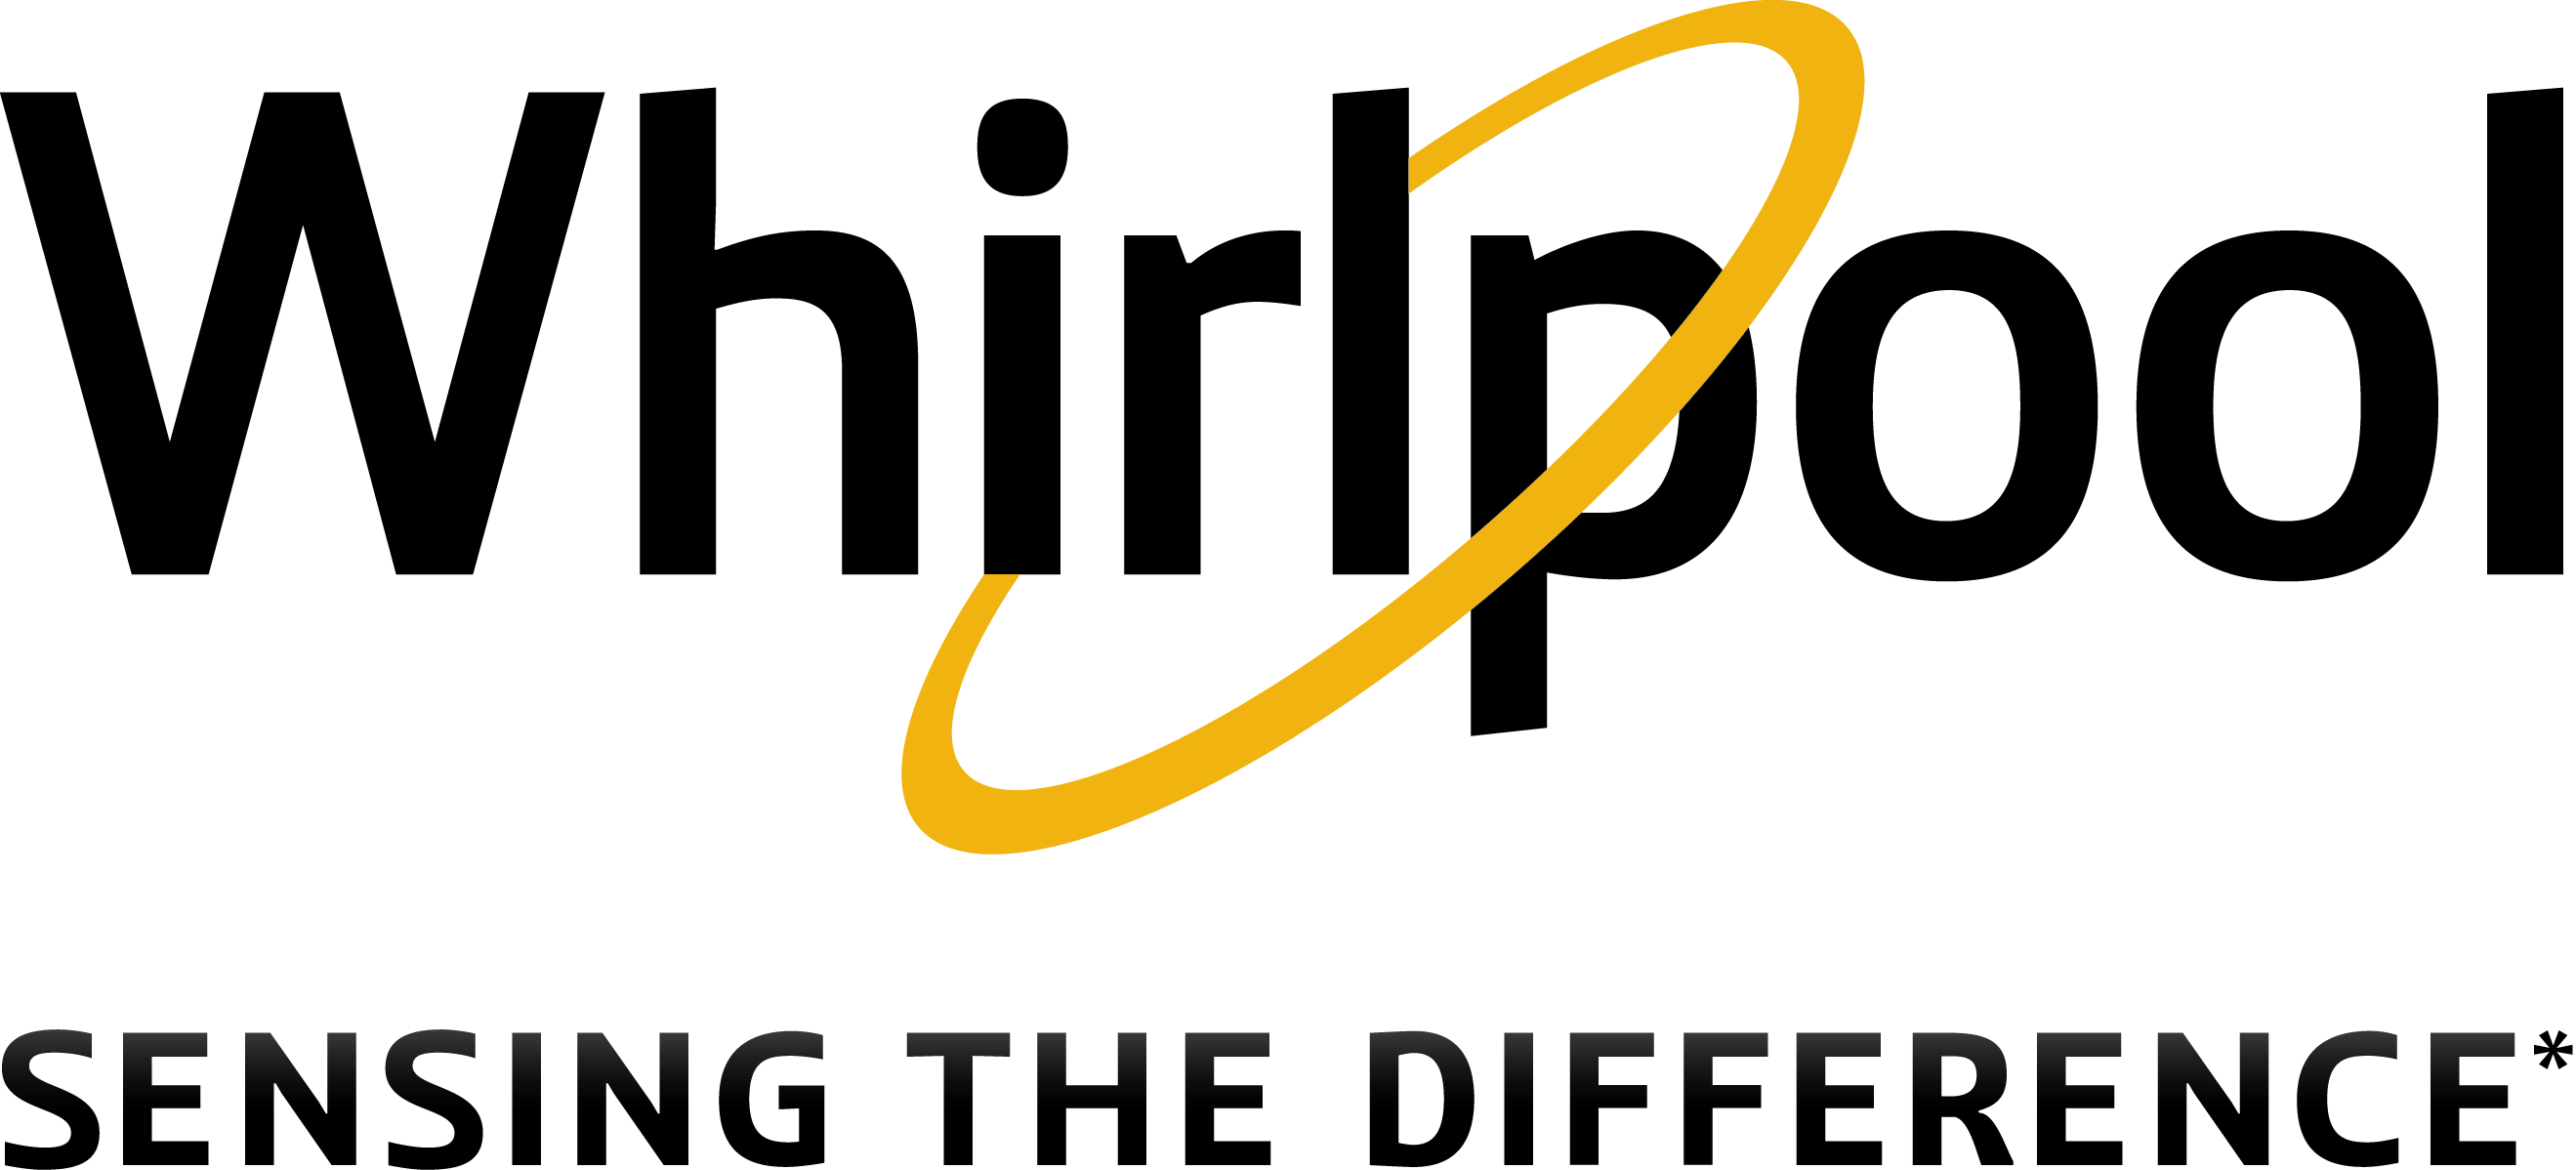 Darty Offre D Emploi Whirlpool W Collection Darty